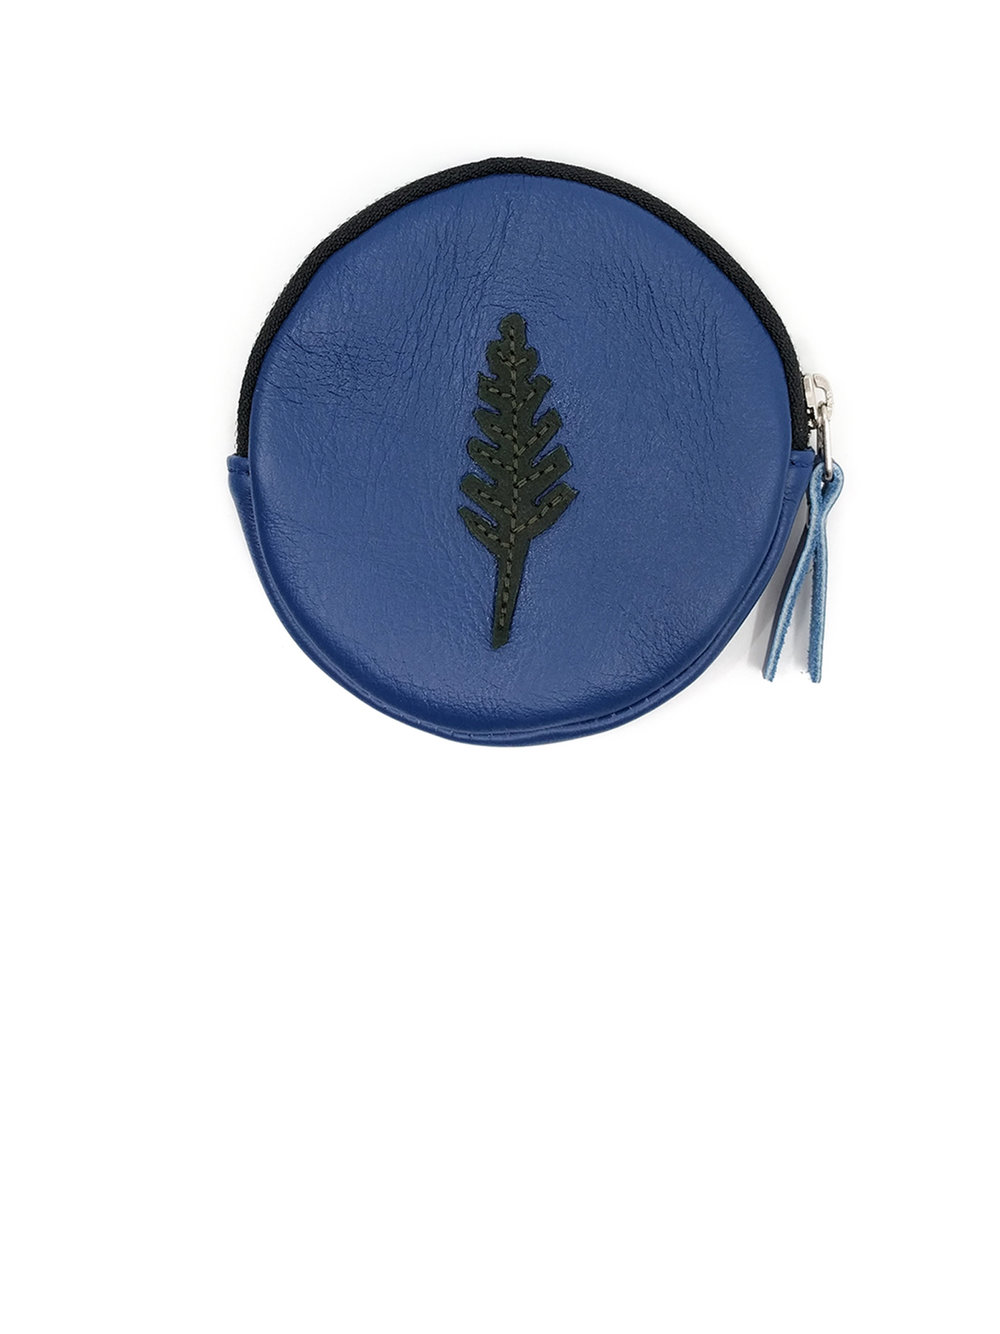 Round coin purse - more colors available30.00$ -36.00$